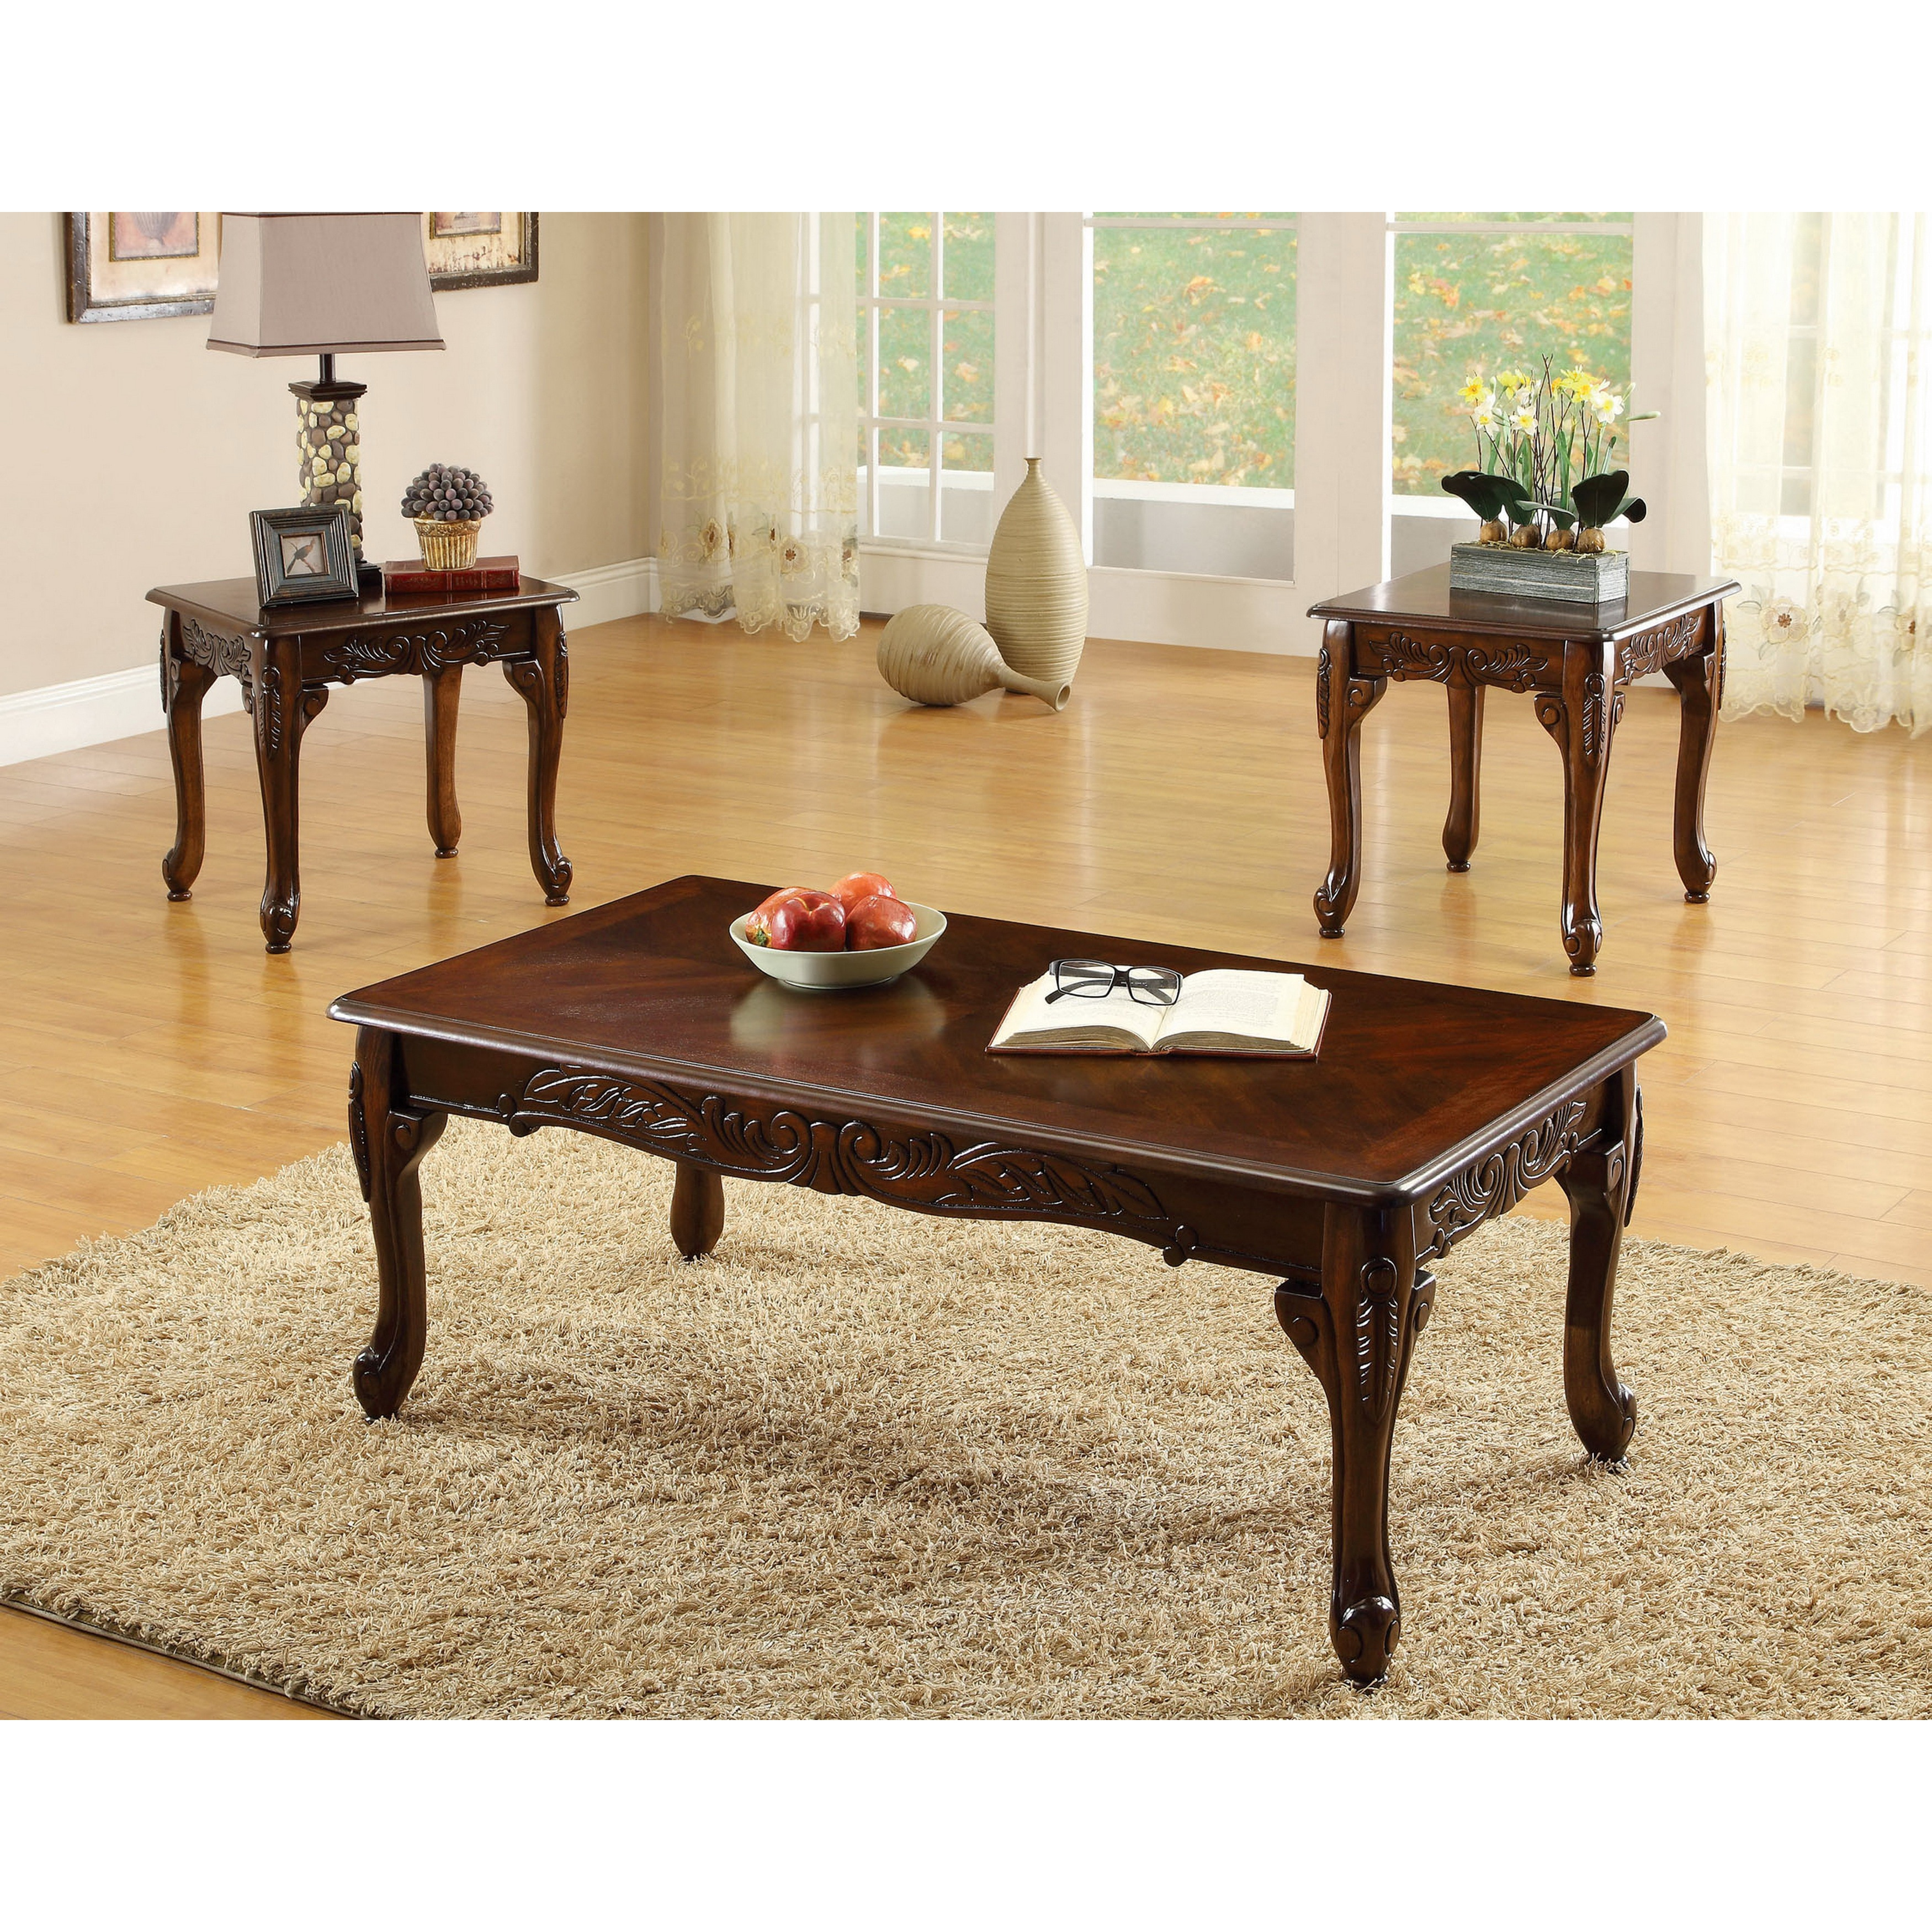 Furniture of America Mariefey Classic 3 piece Coffee and End Table